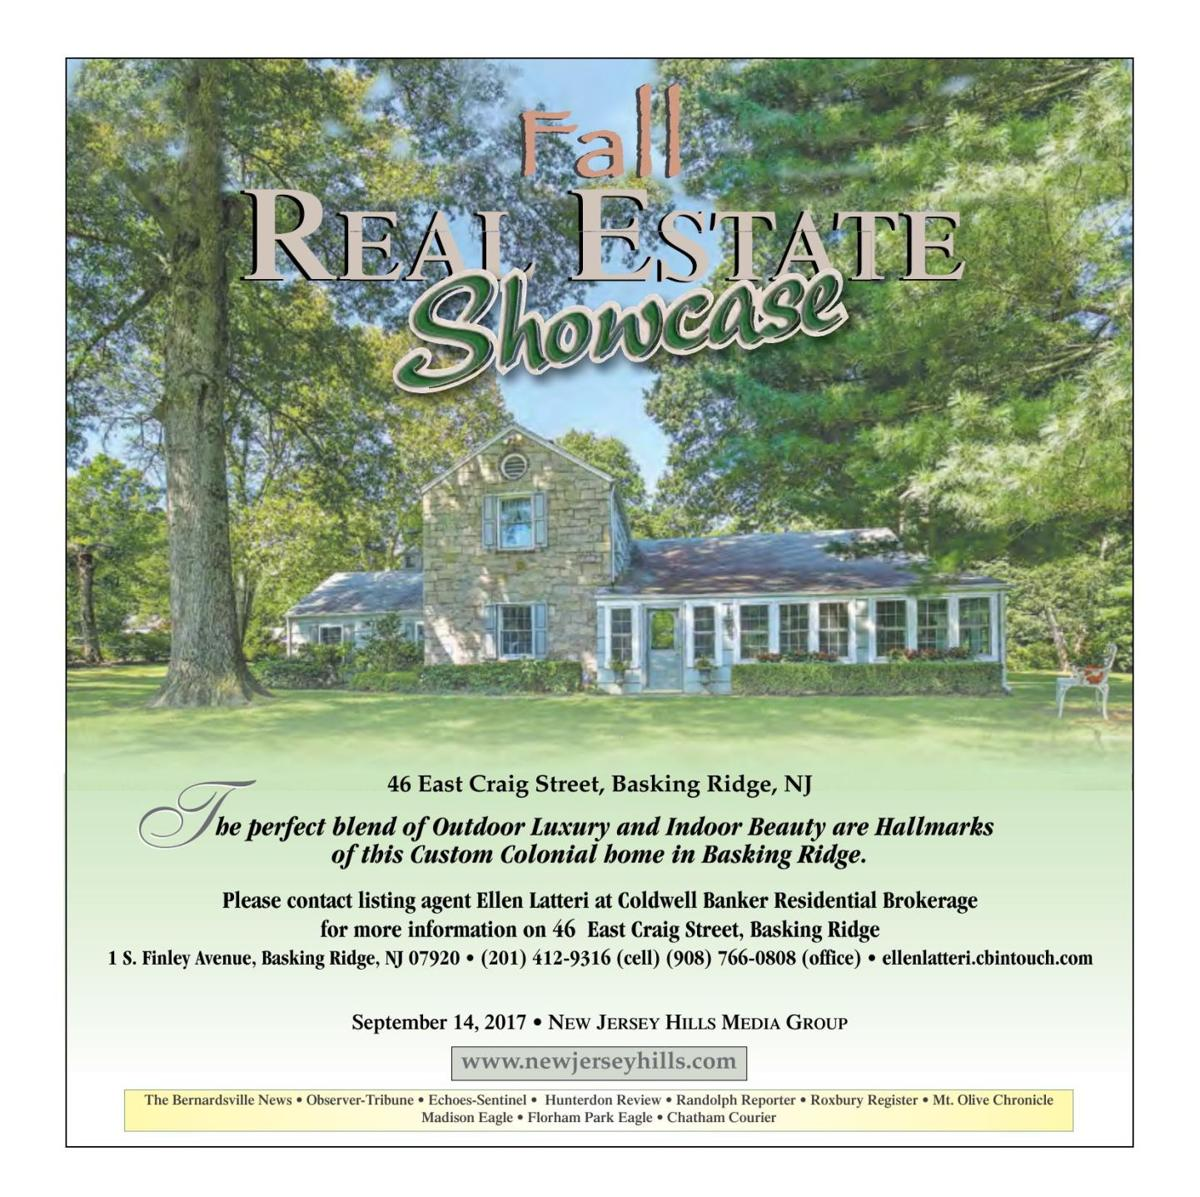 Fall Real Estate Showcase - September 14, 2017